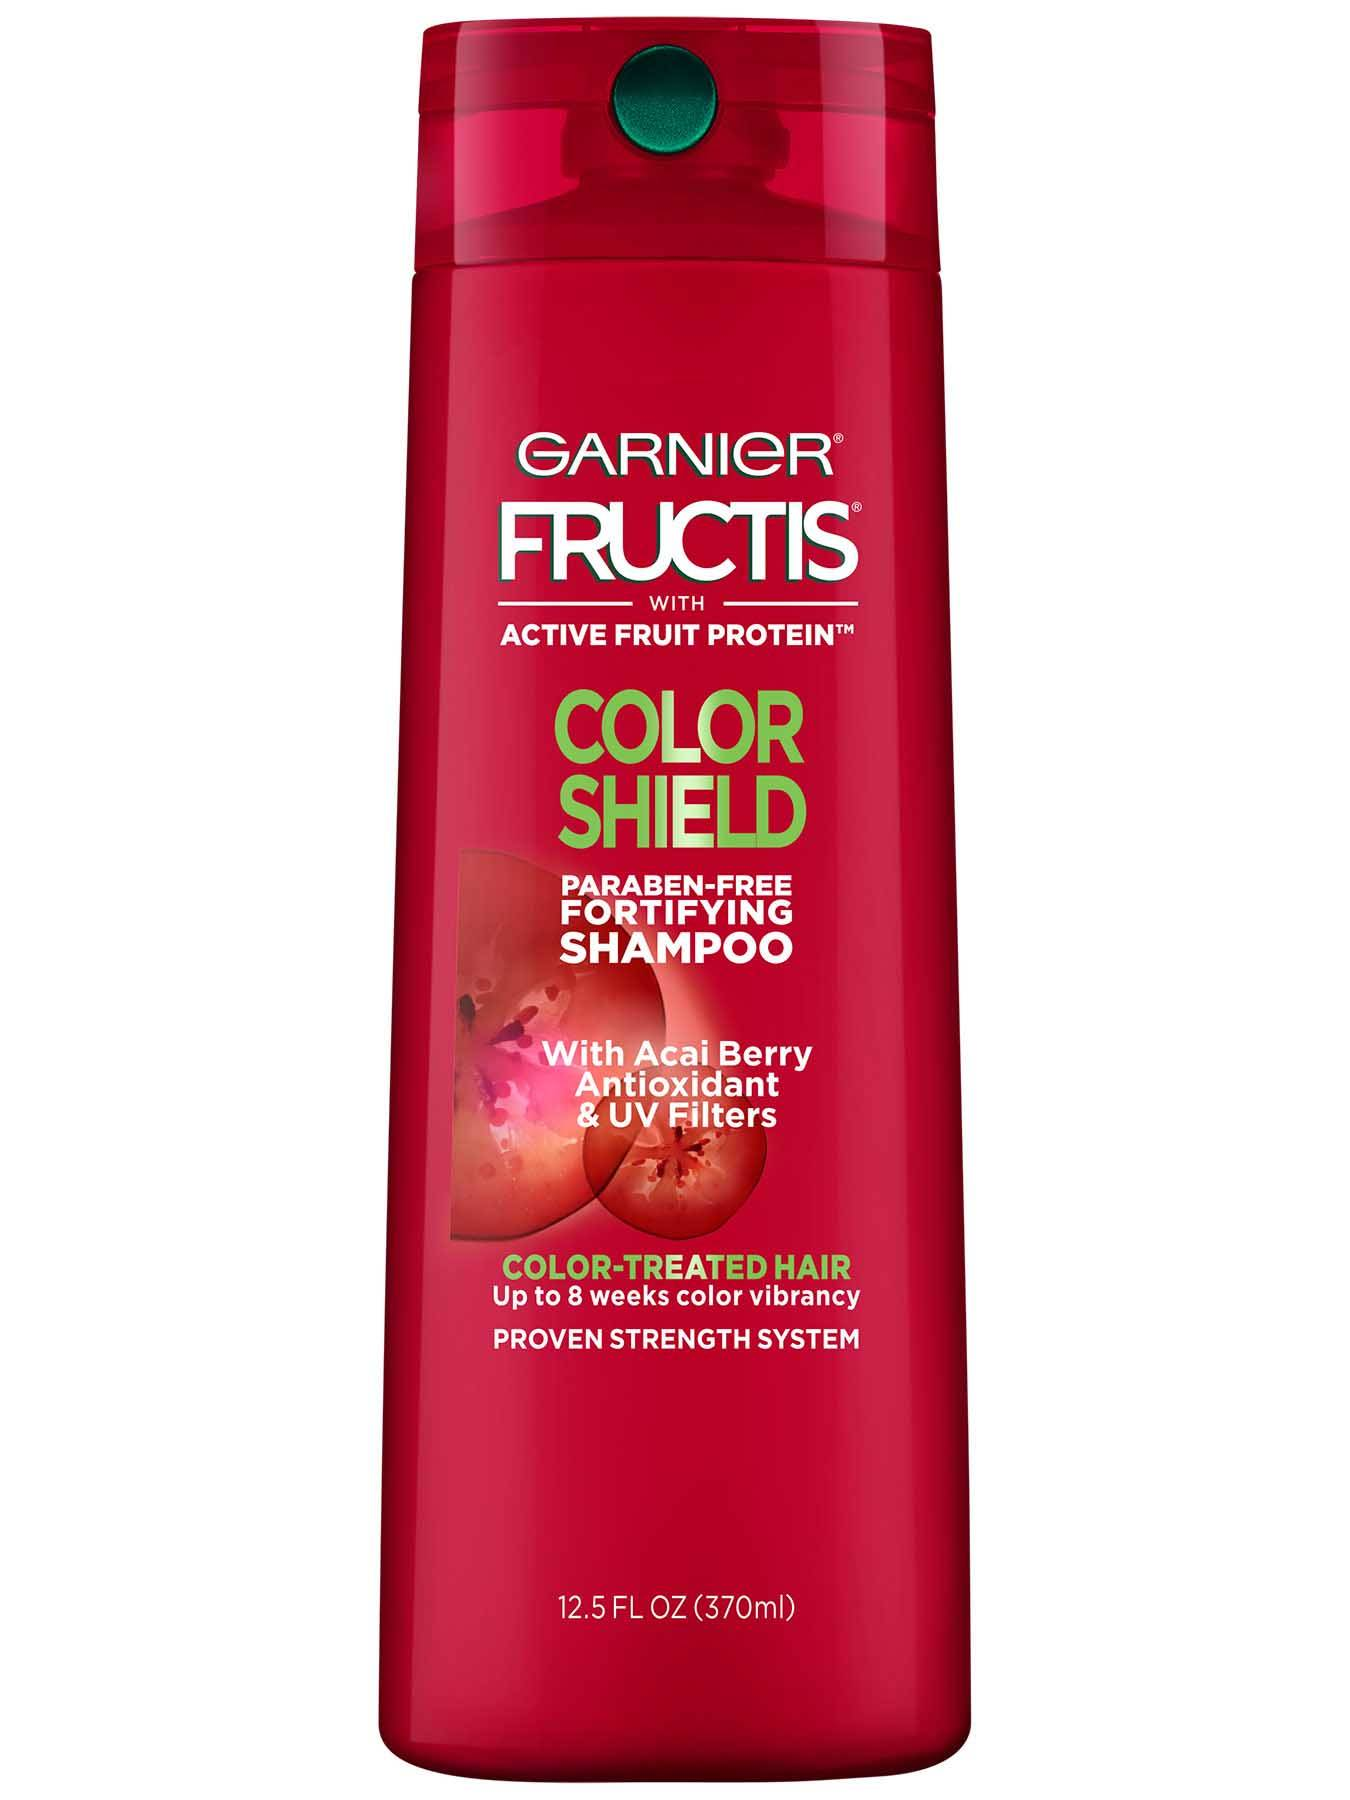 Hair Care Products For Stronger Healthier Hair Garnier